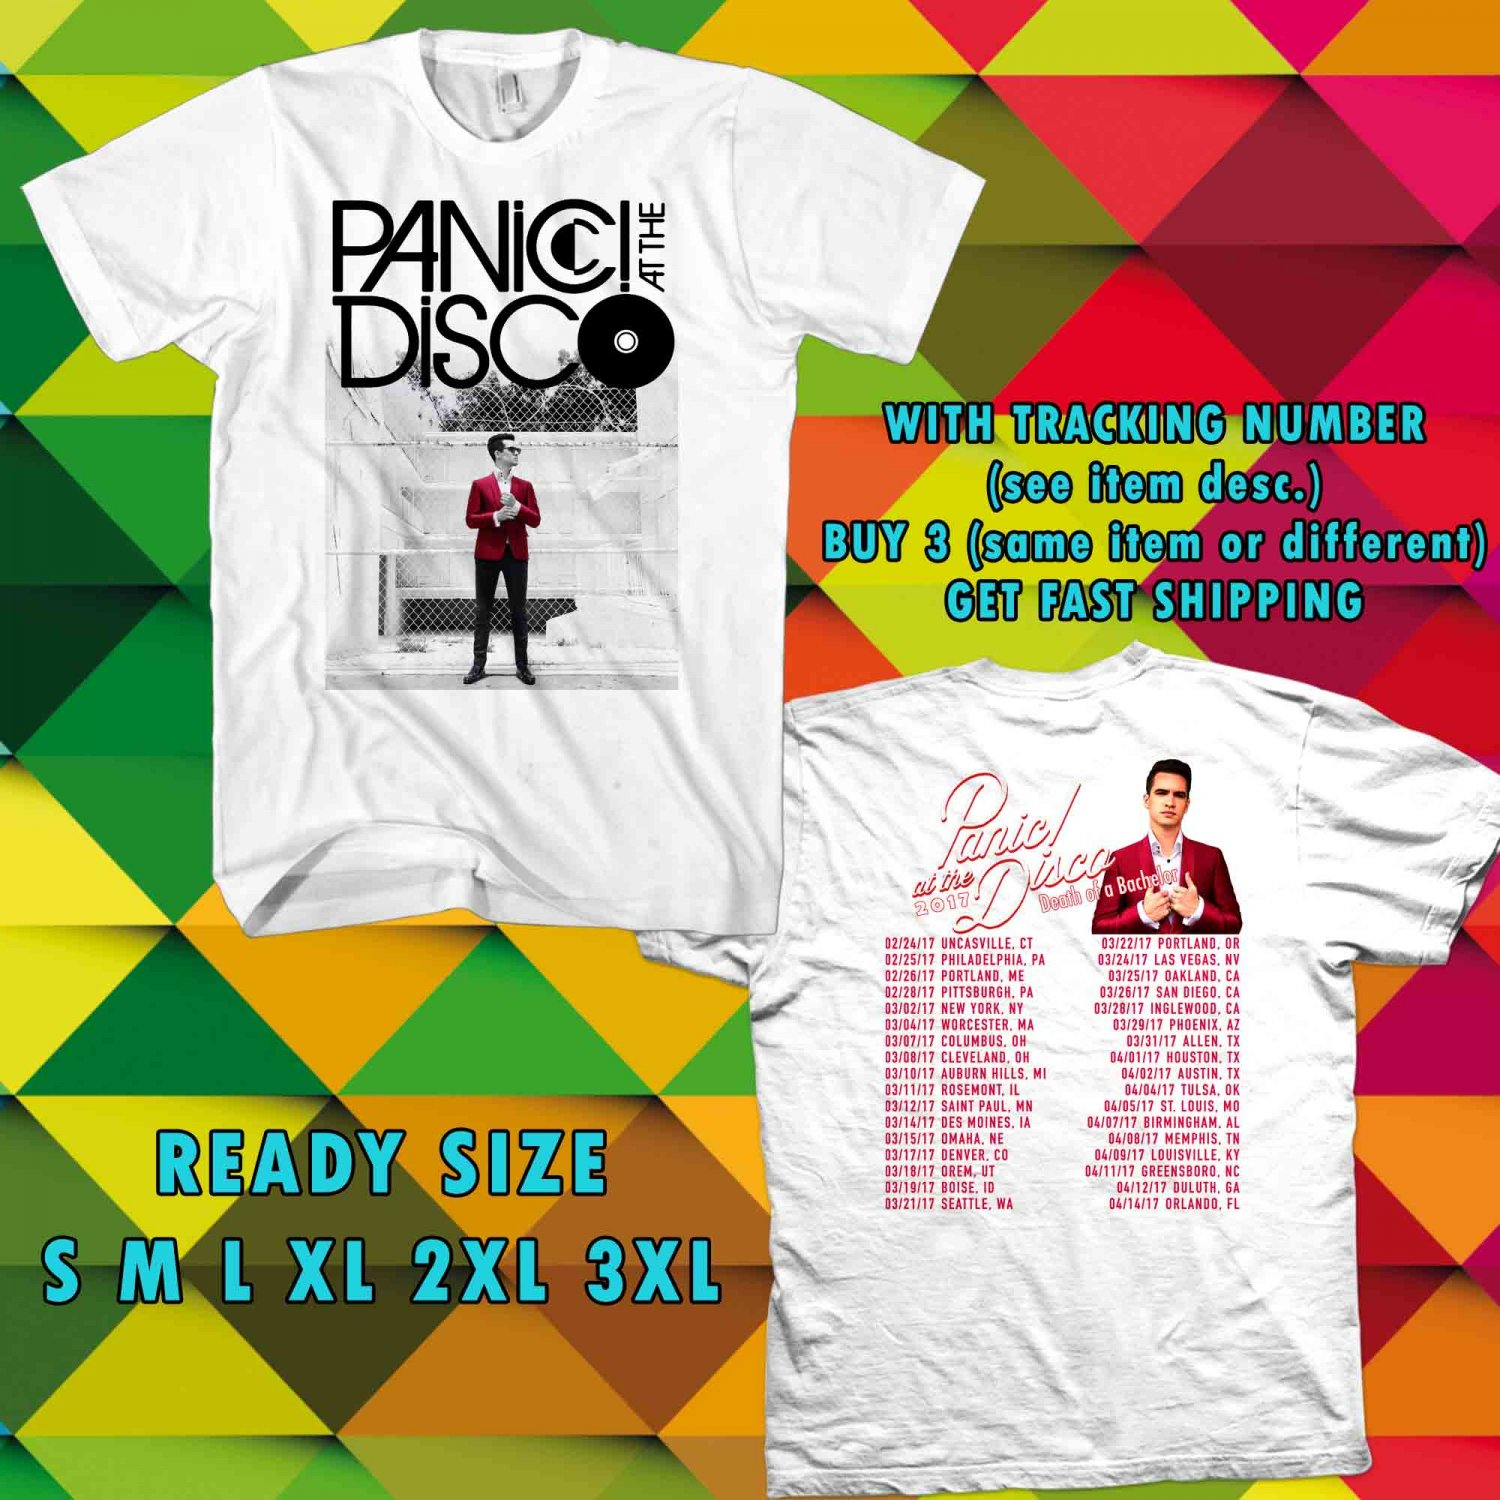 WOW PANIC AT THE DISCO DEATH OF BACHELOR TOUR 2017 WHITE TEE S-3XL ASTR